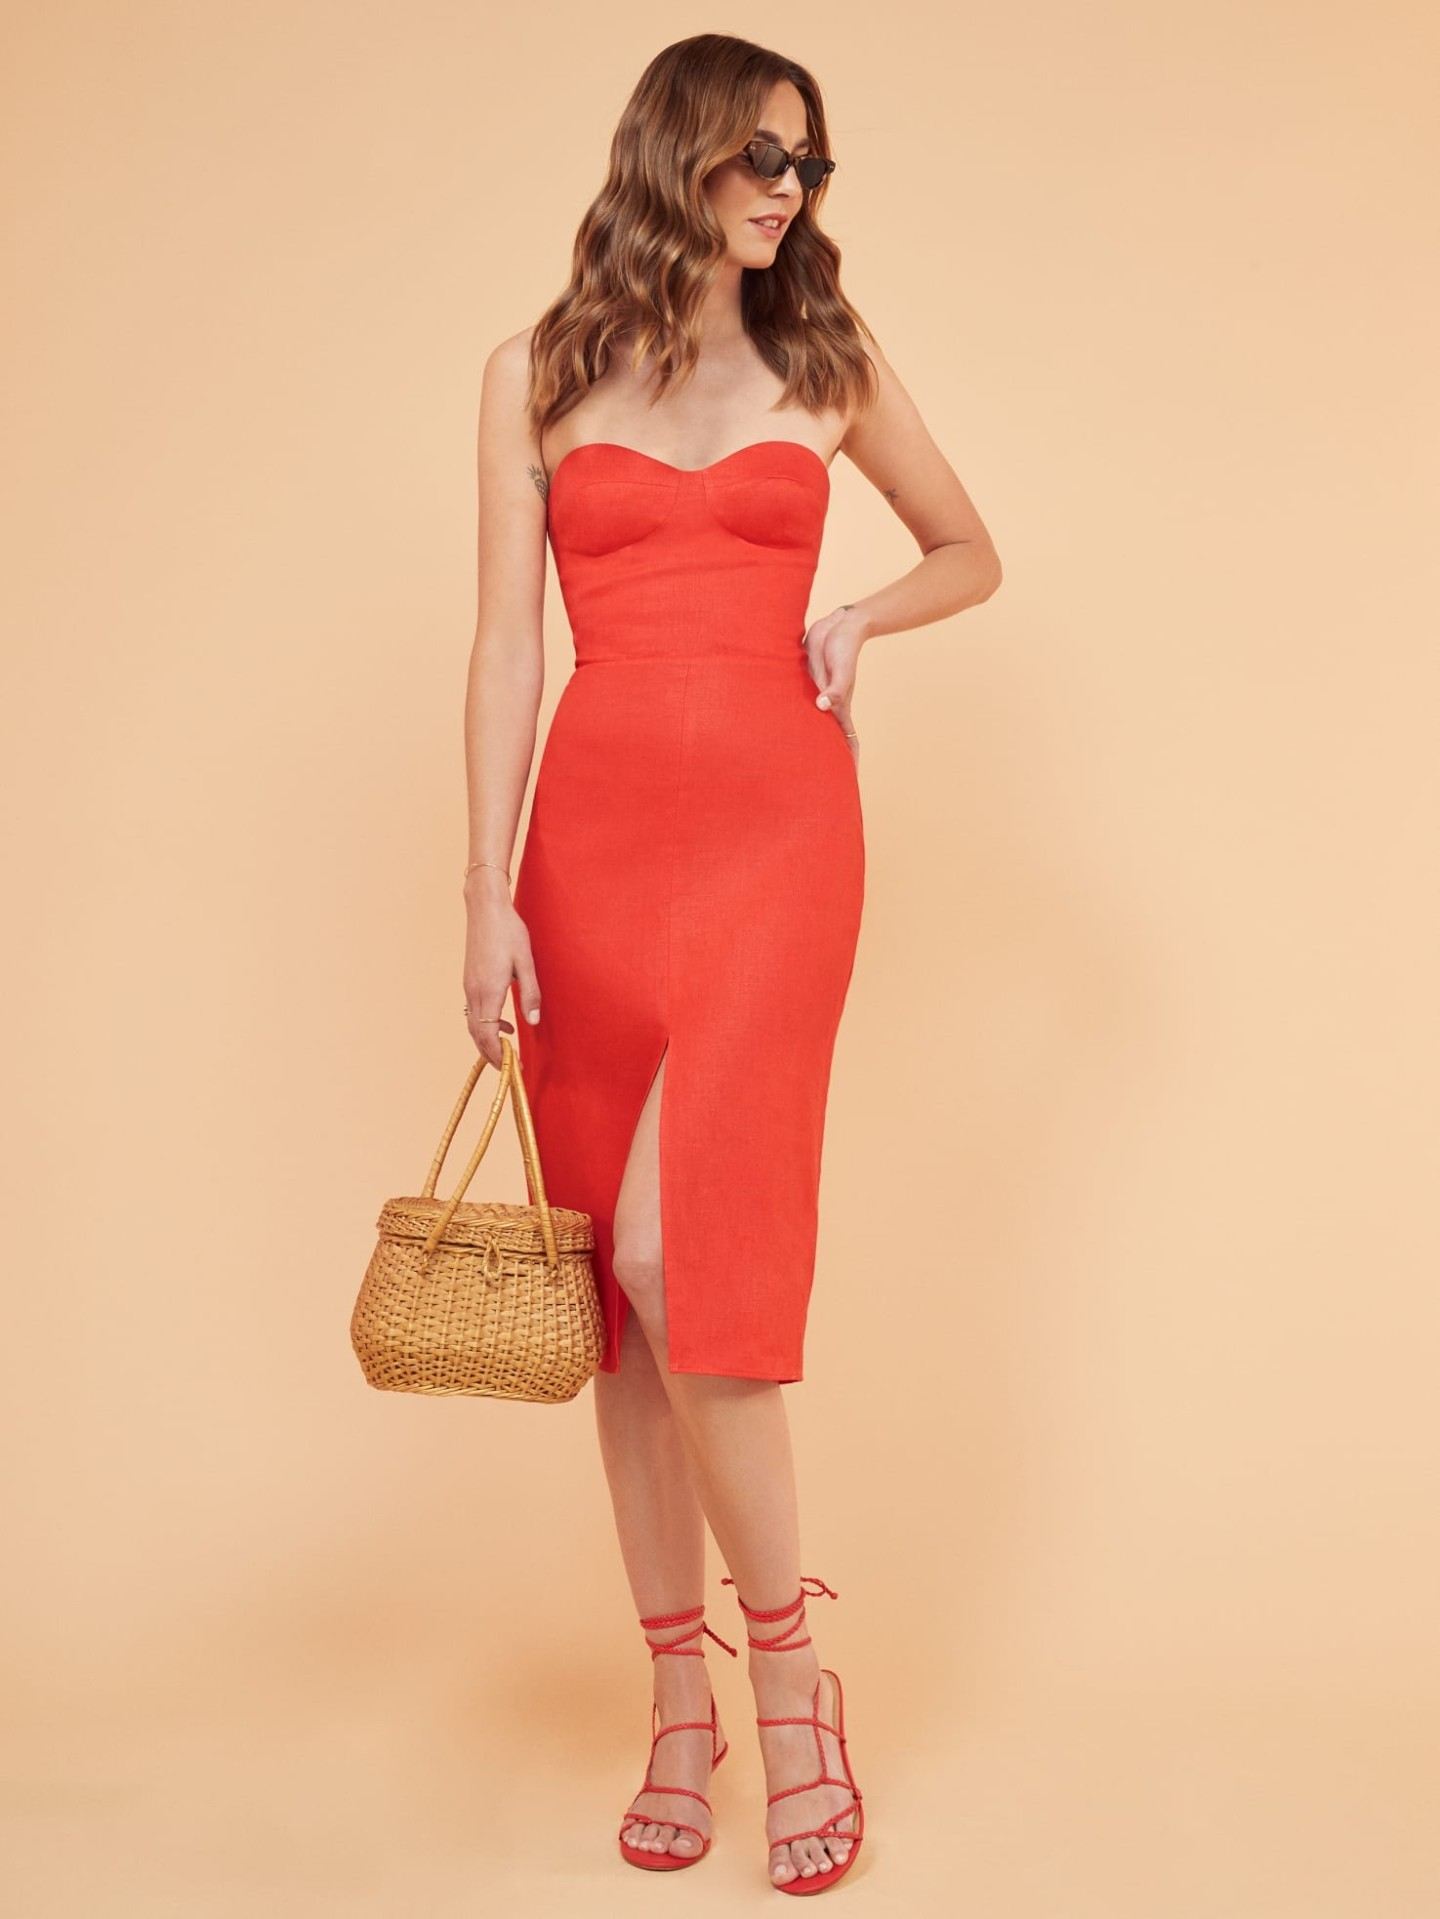 THEREFORMATION Oboe Red Dress